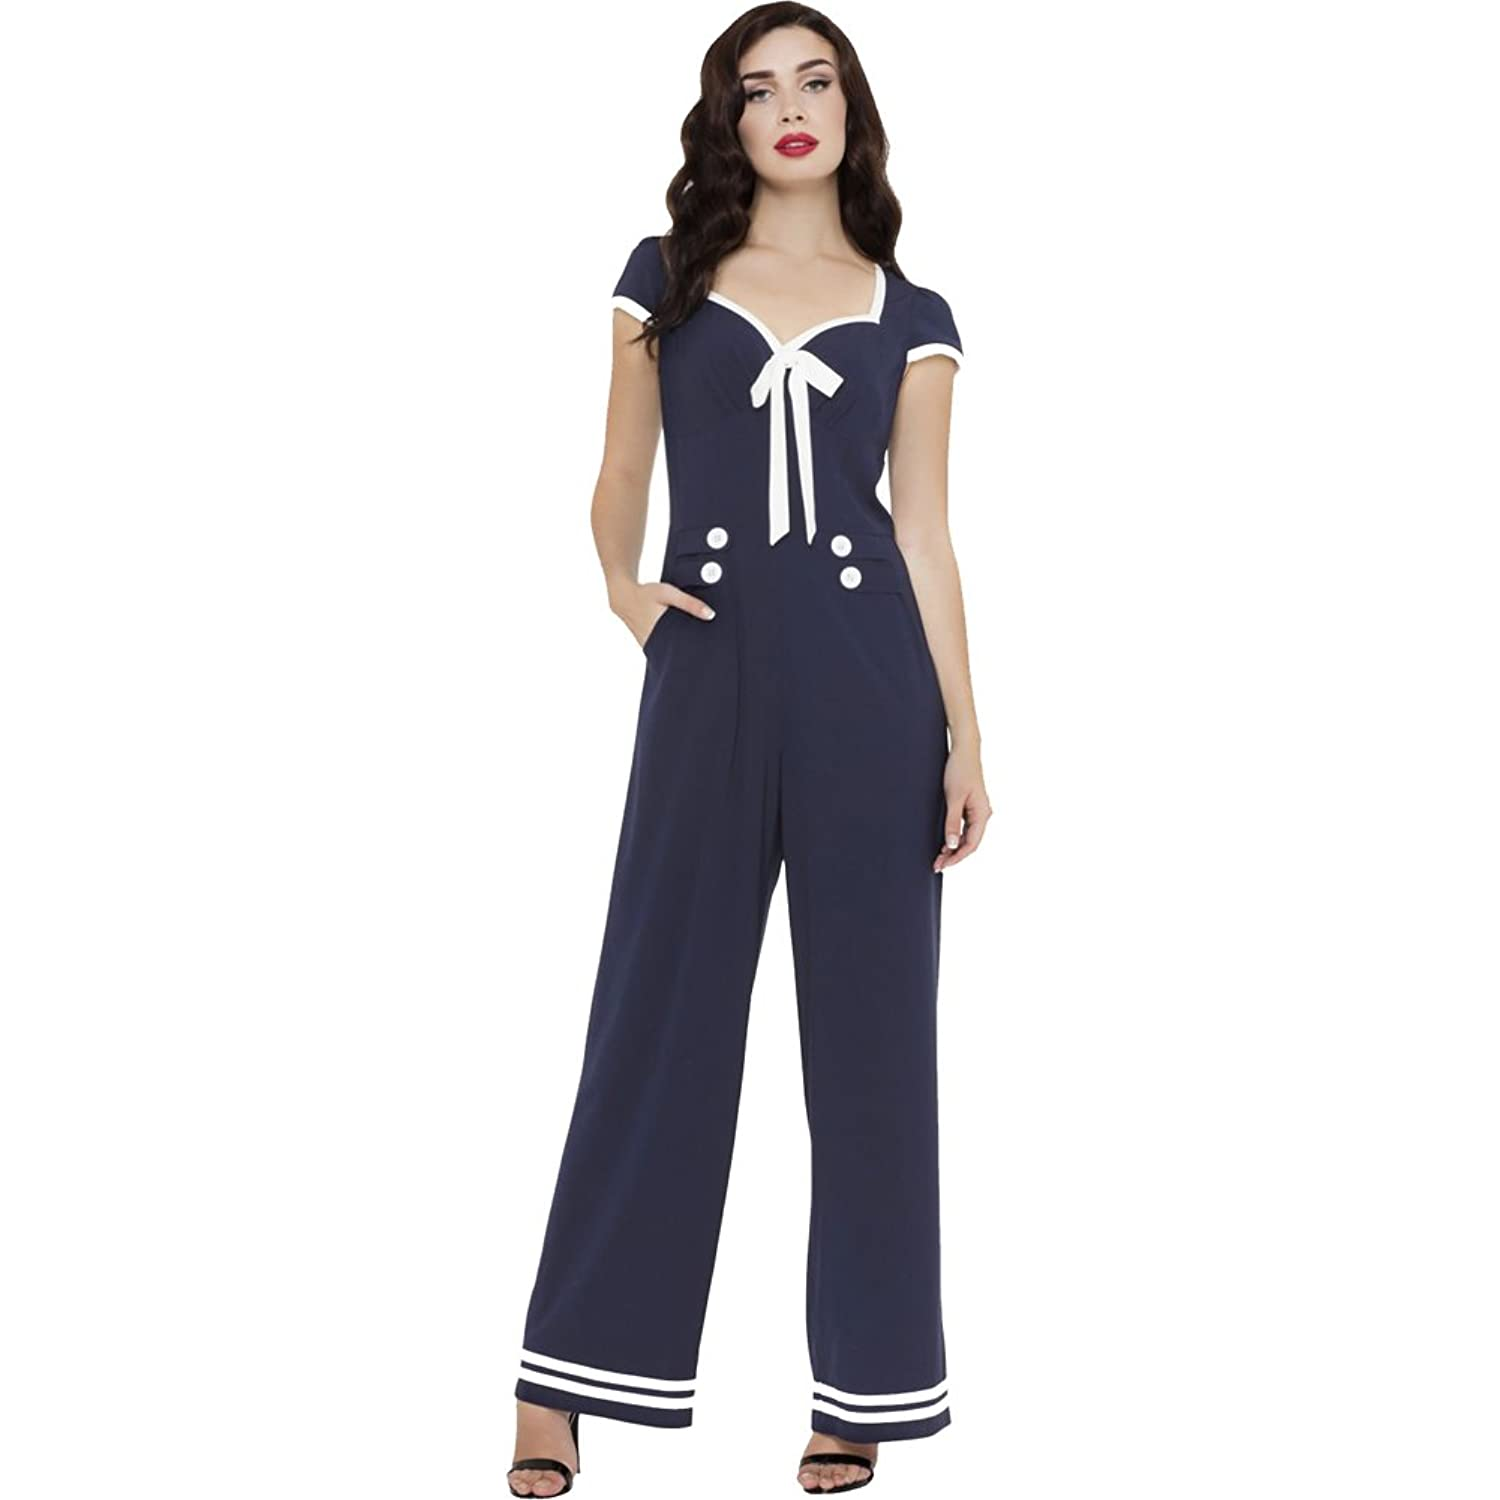 1950s Pants & Jeans- High Waist, Wide Leg, Capri, Pedal Pushers Womens Voodoo Vixen JOLENE Nautical Stripped Wide Leg Jumpsuit Navy $73.95 AT vintagedancer.com